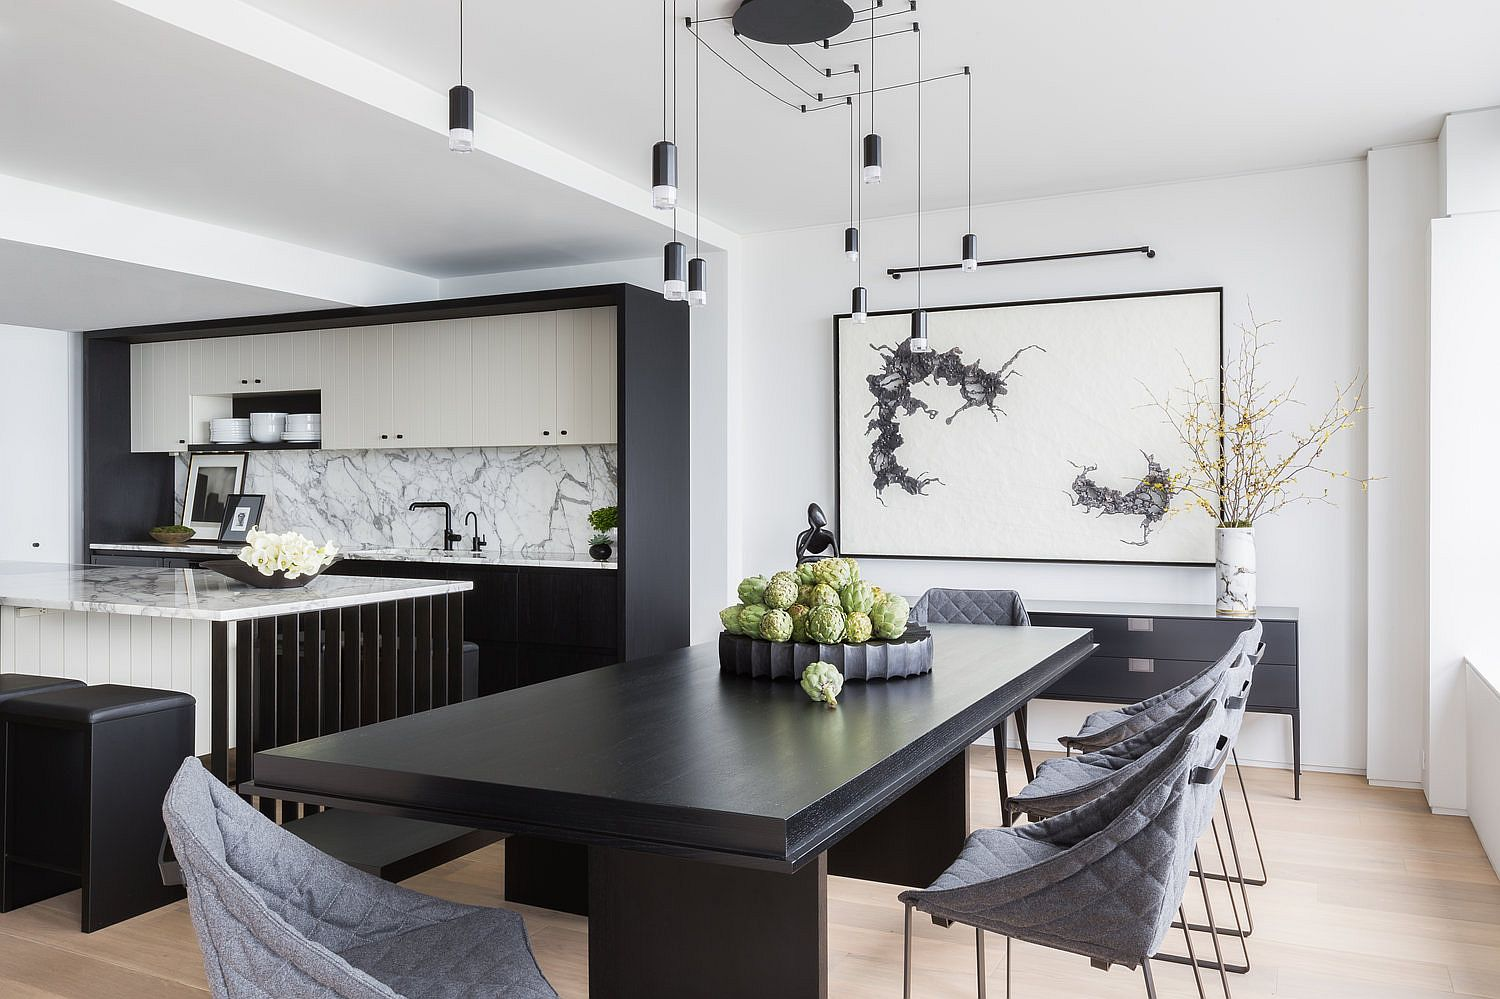 Black, gray and stone combine to give the revamped interior a whole new look